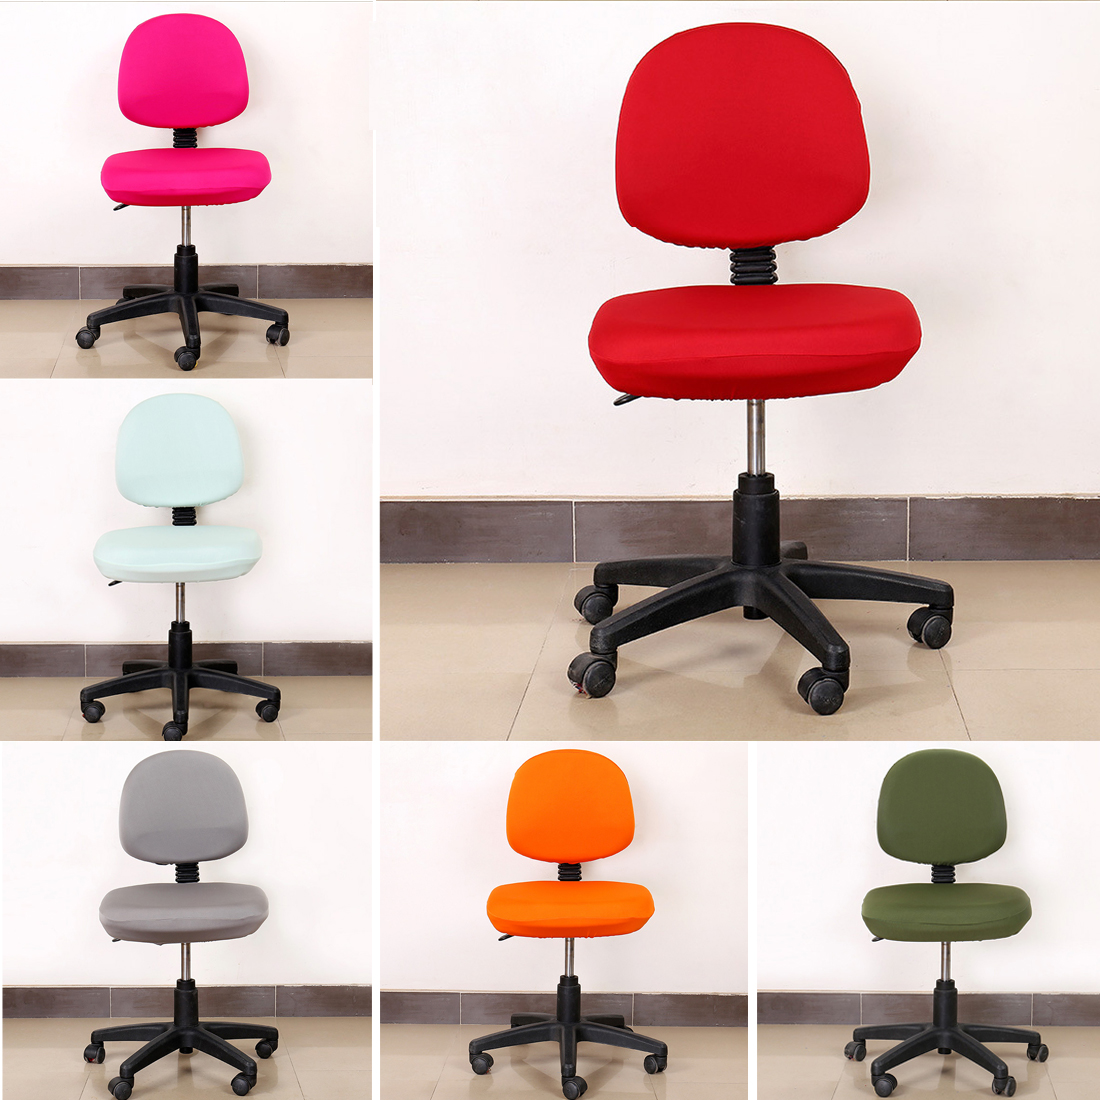 Free Shipping Spandex Chair Covers Stretch Elastic Slipcovers Office Chair For Computer Chair Gaming Chair Chair Covering